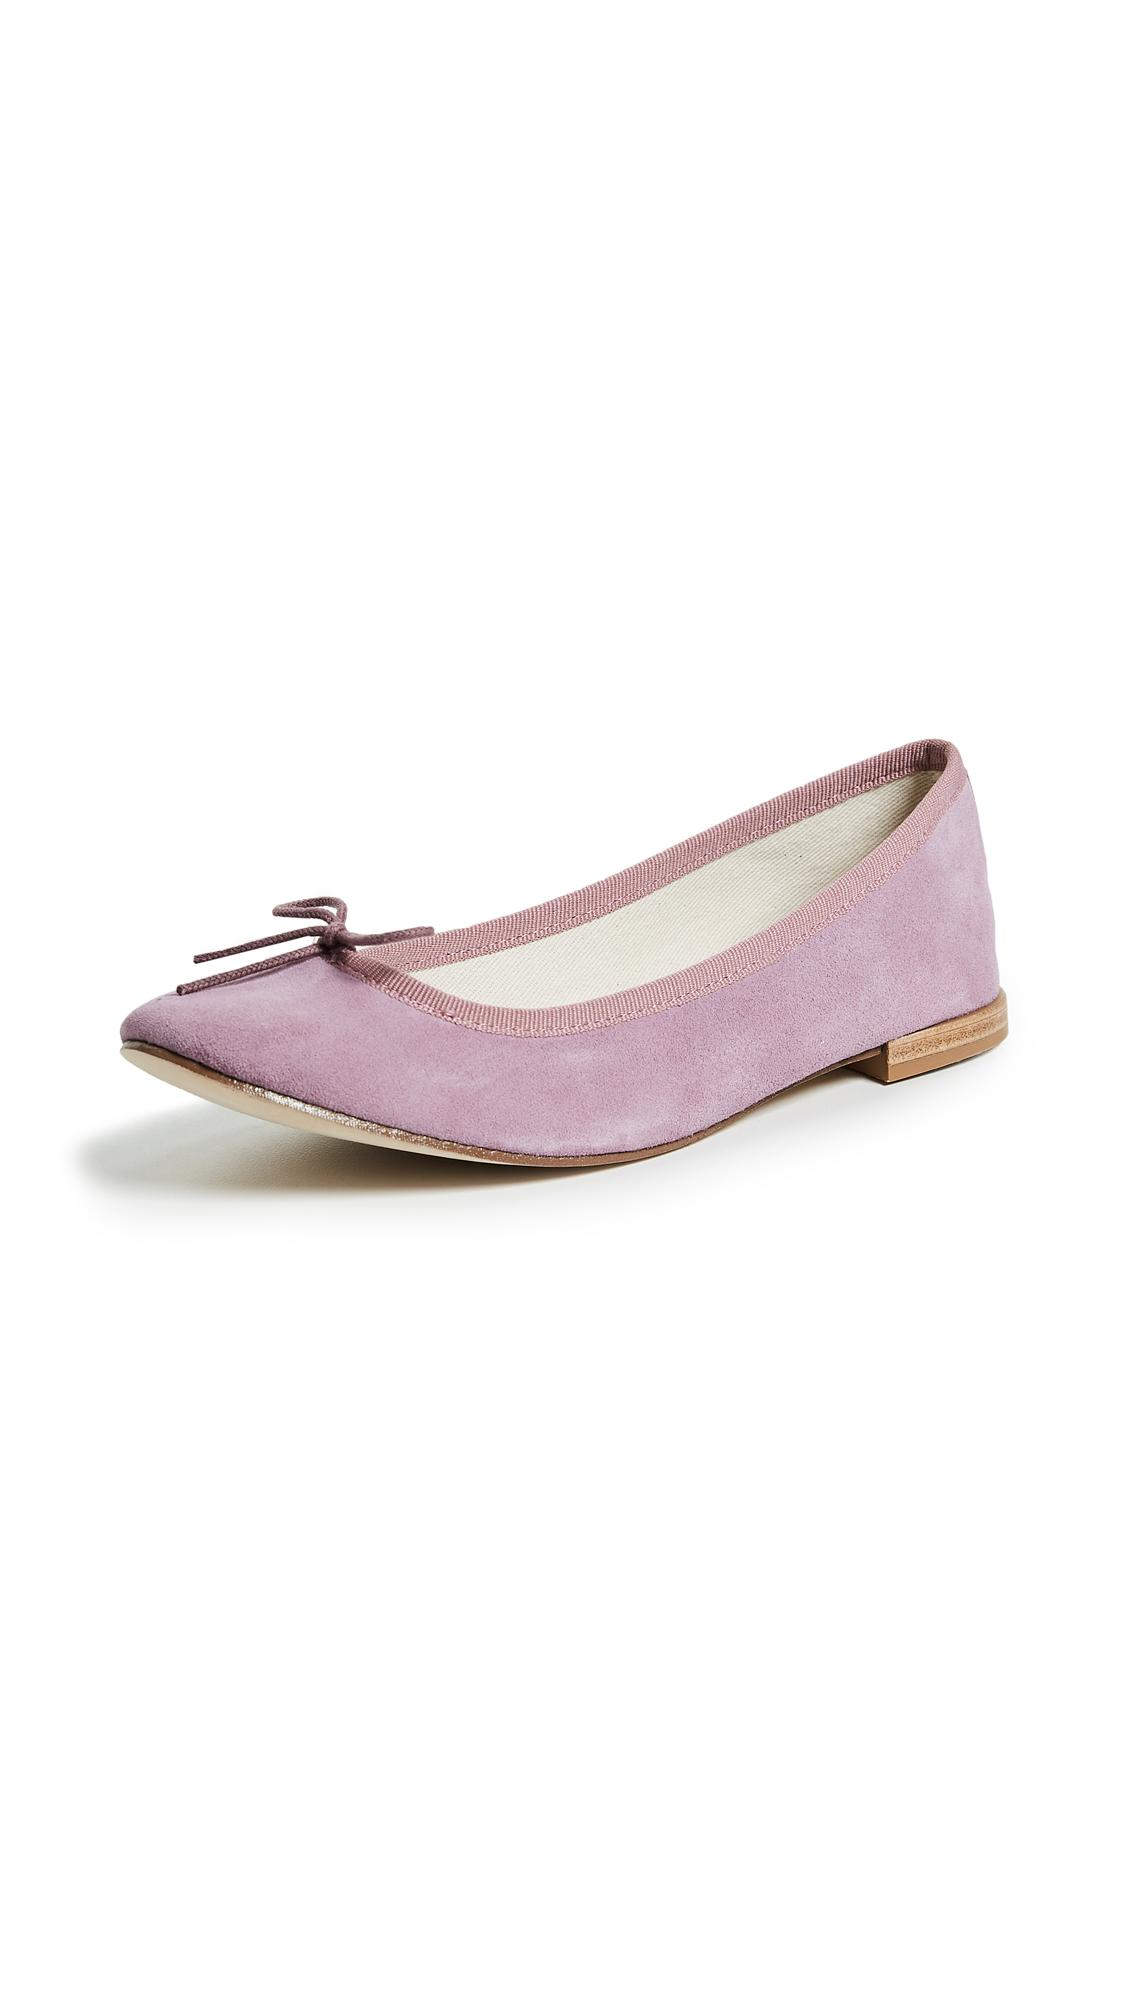 bb237cee9df Cendrillon Ballet Flats in Pale Pink